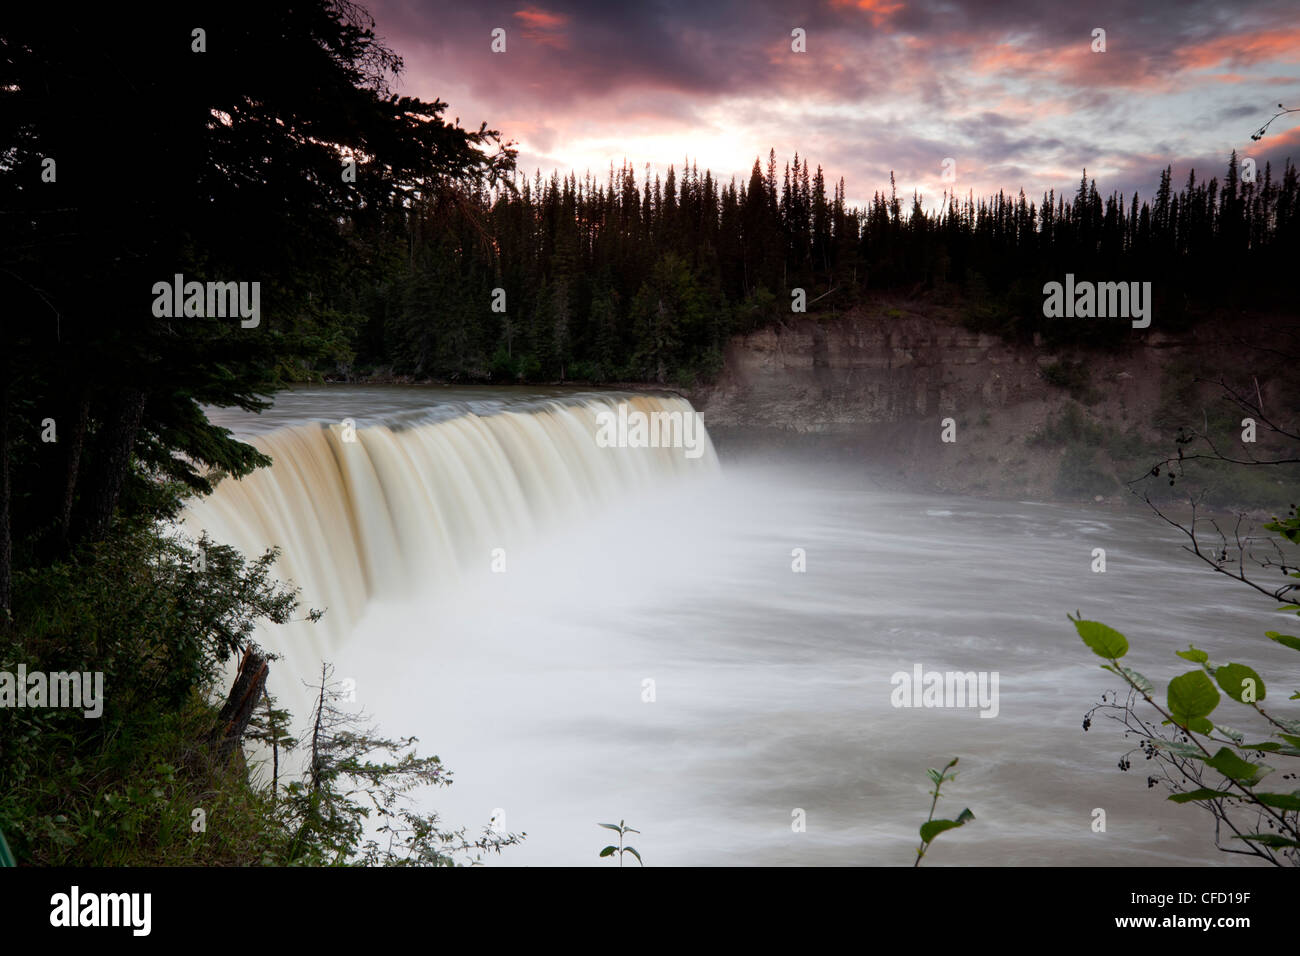 Lady Evelyn Falls on the Kakisa River in Lady Evelyn Falls Territorial Park, Northwest Territories, Canada - Stock Image